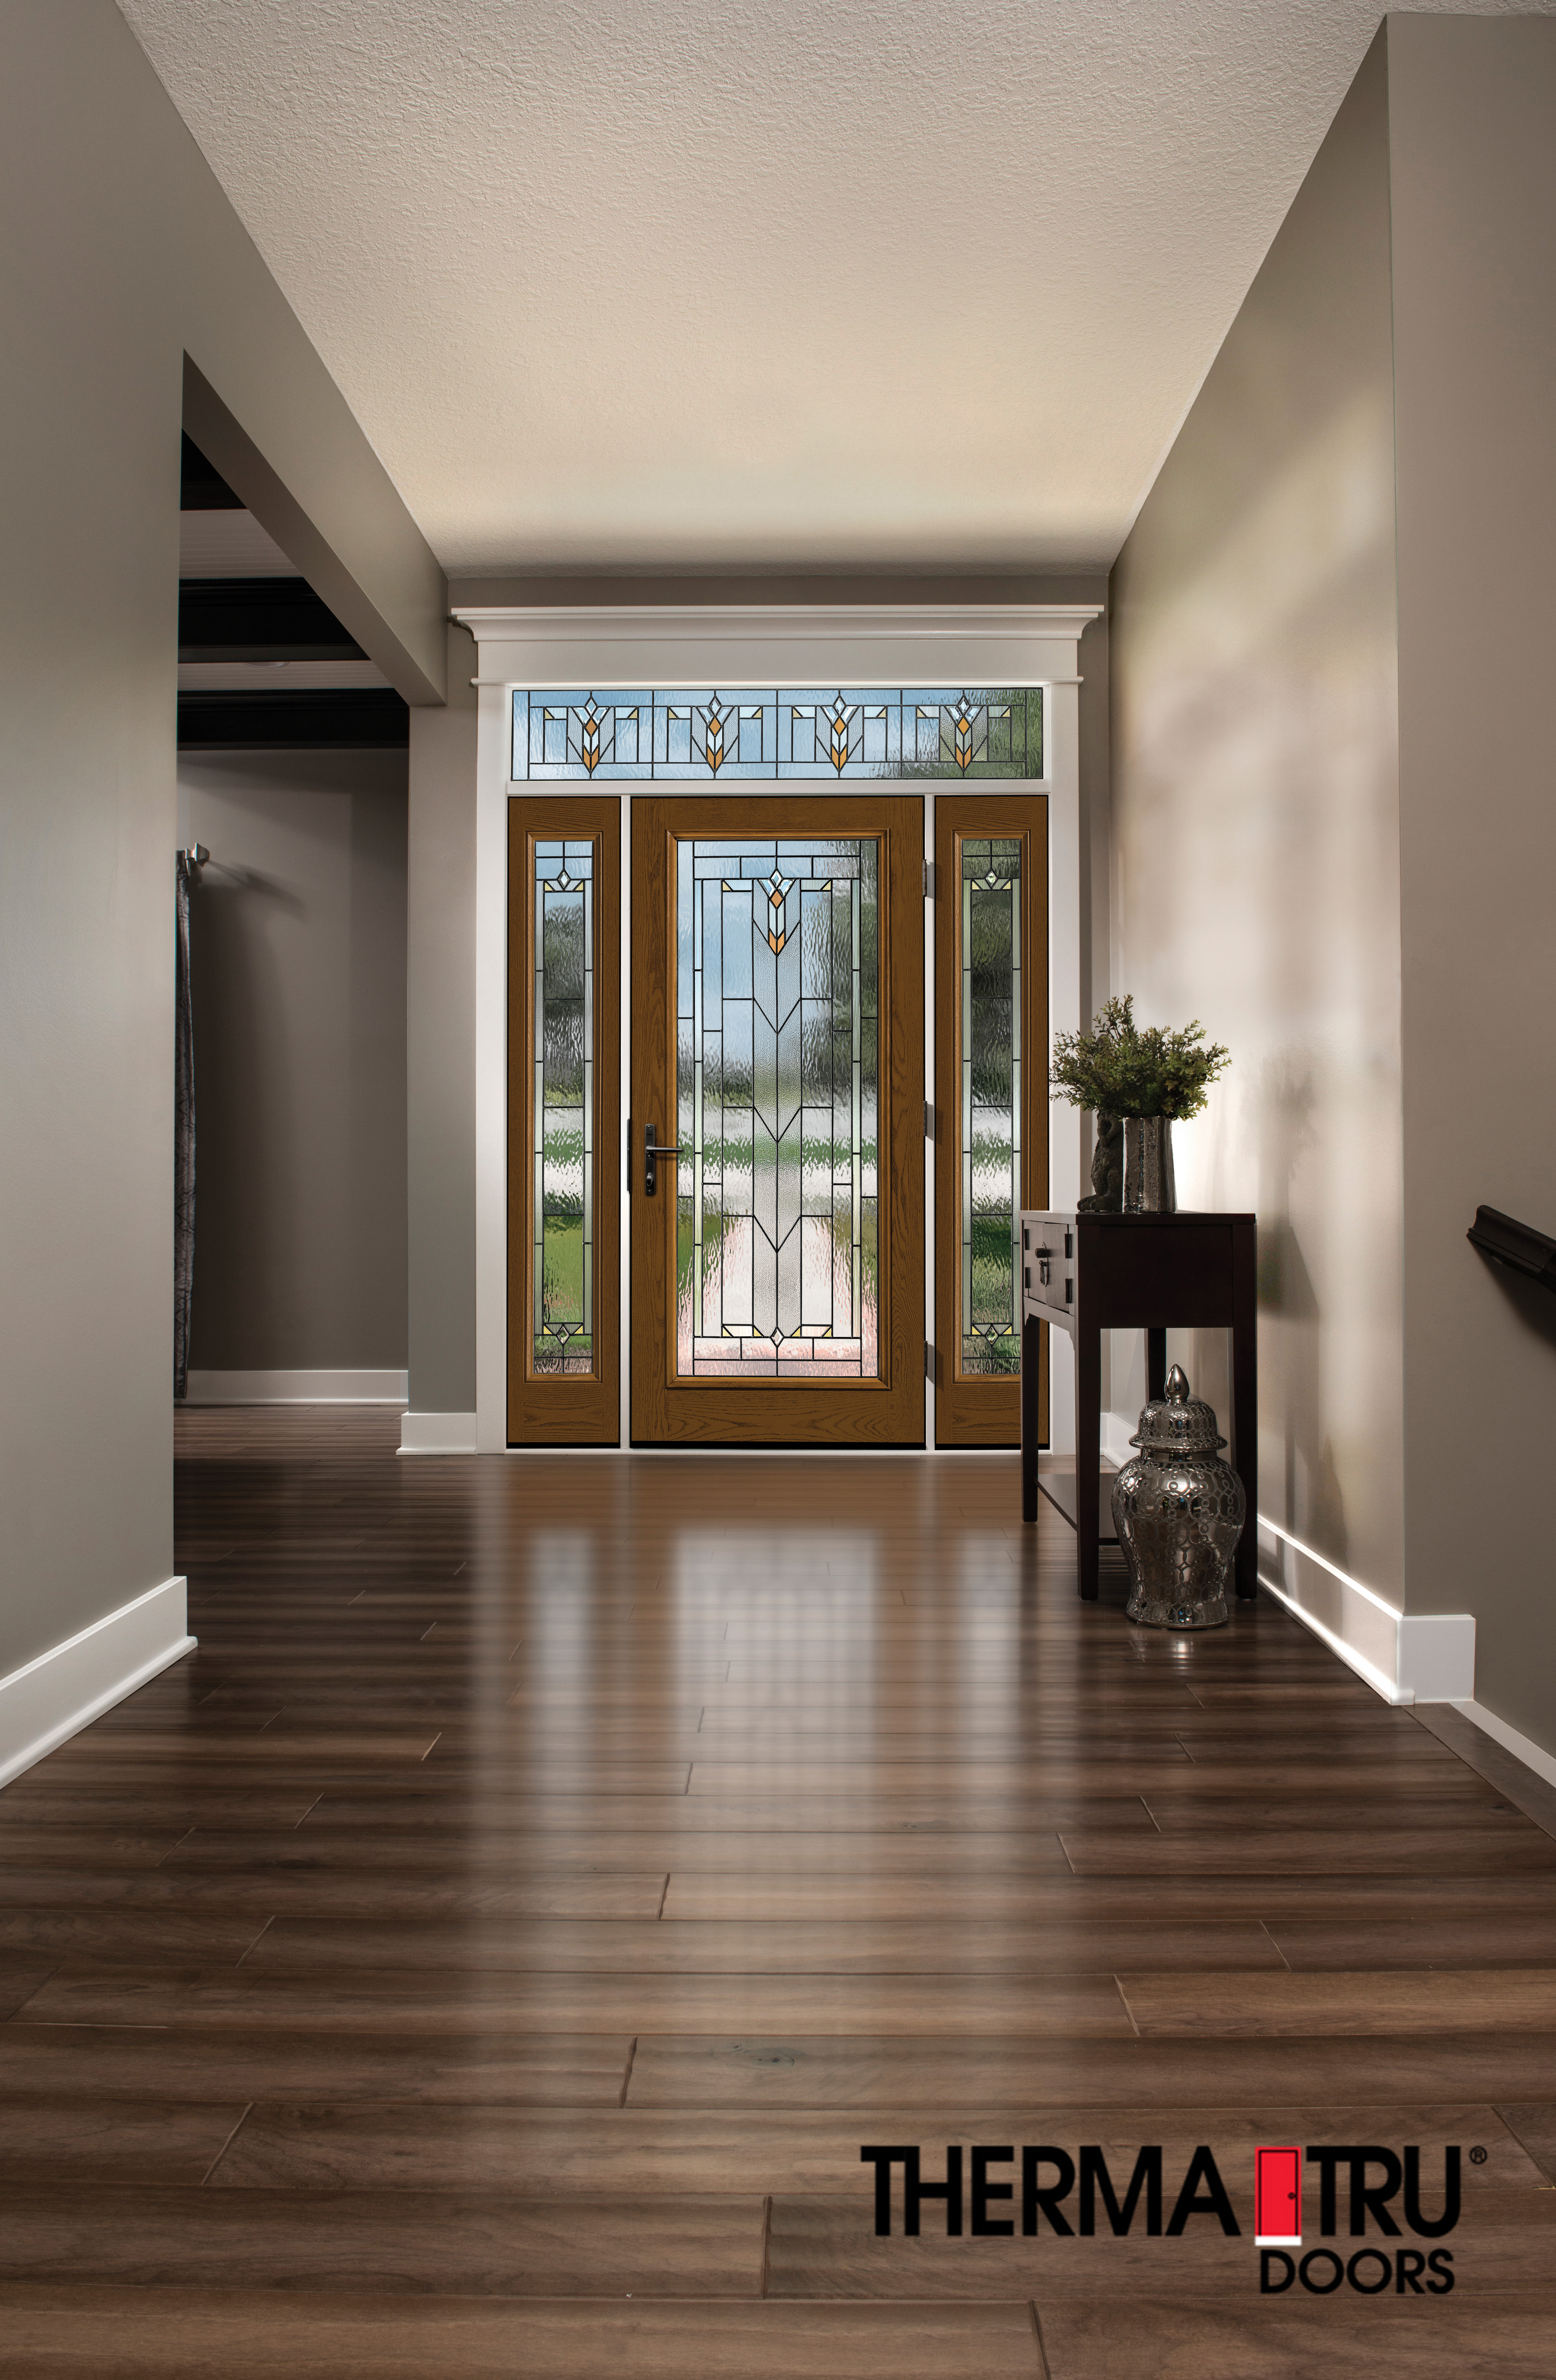 Well-lit entry way with glass door and hardwood floors